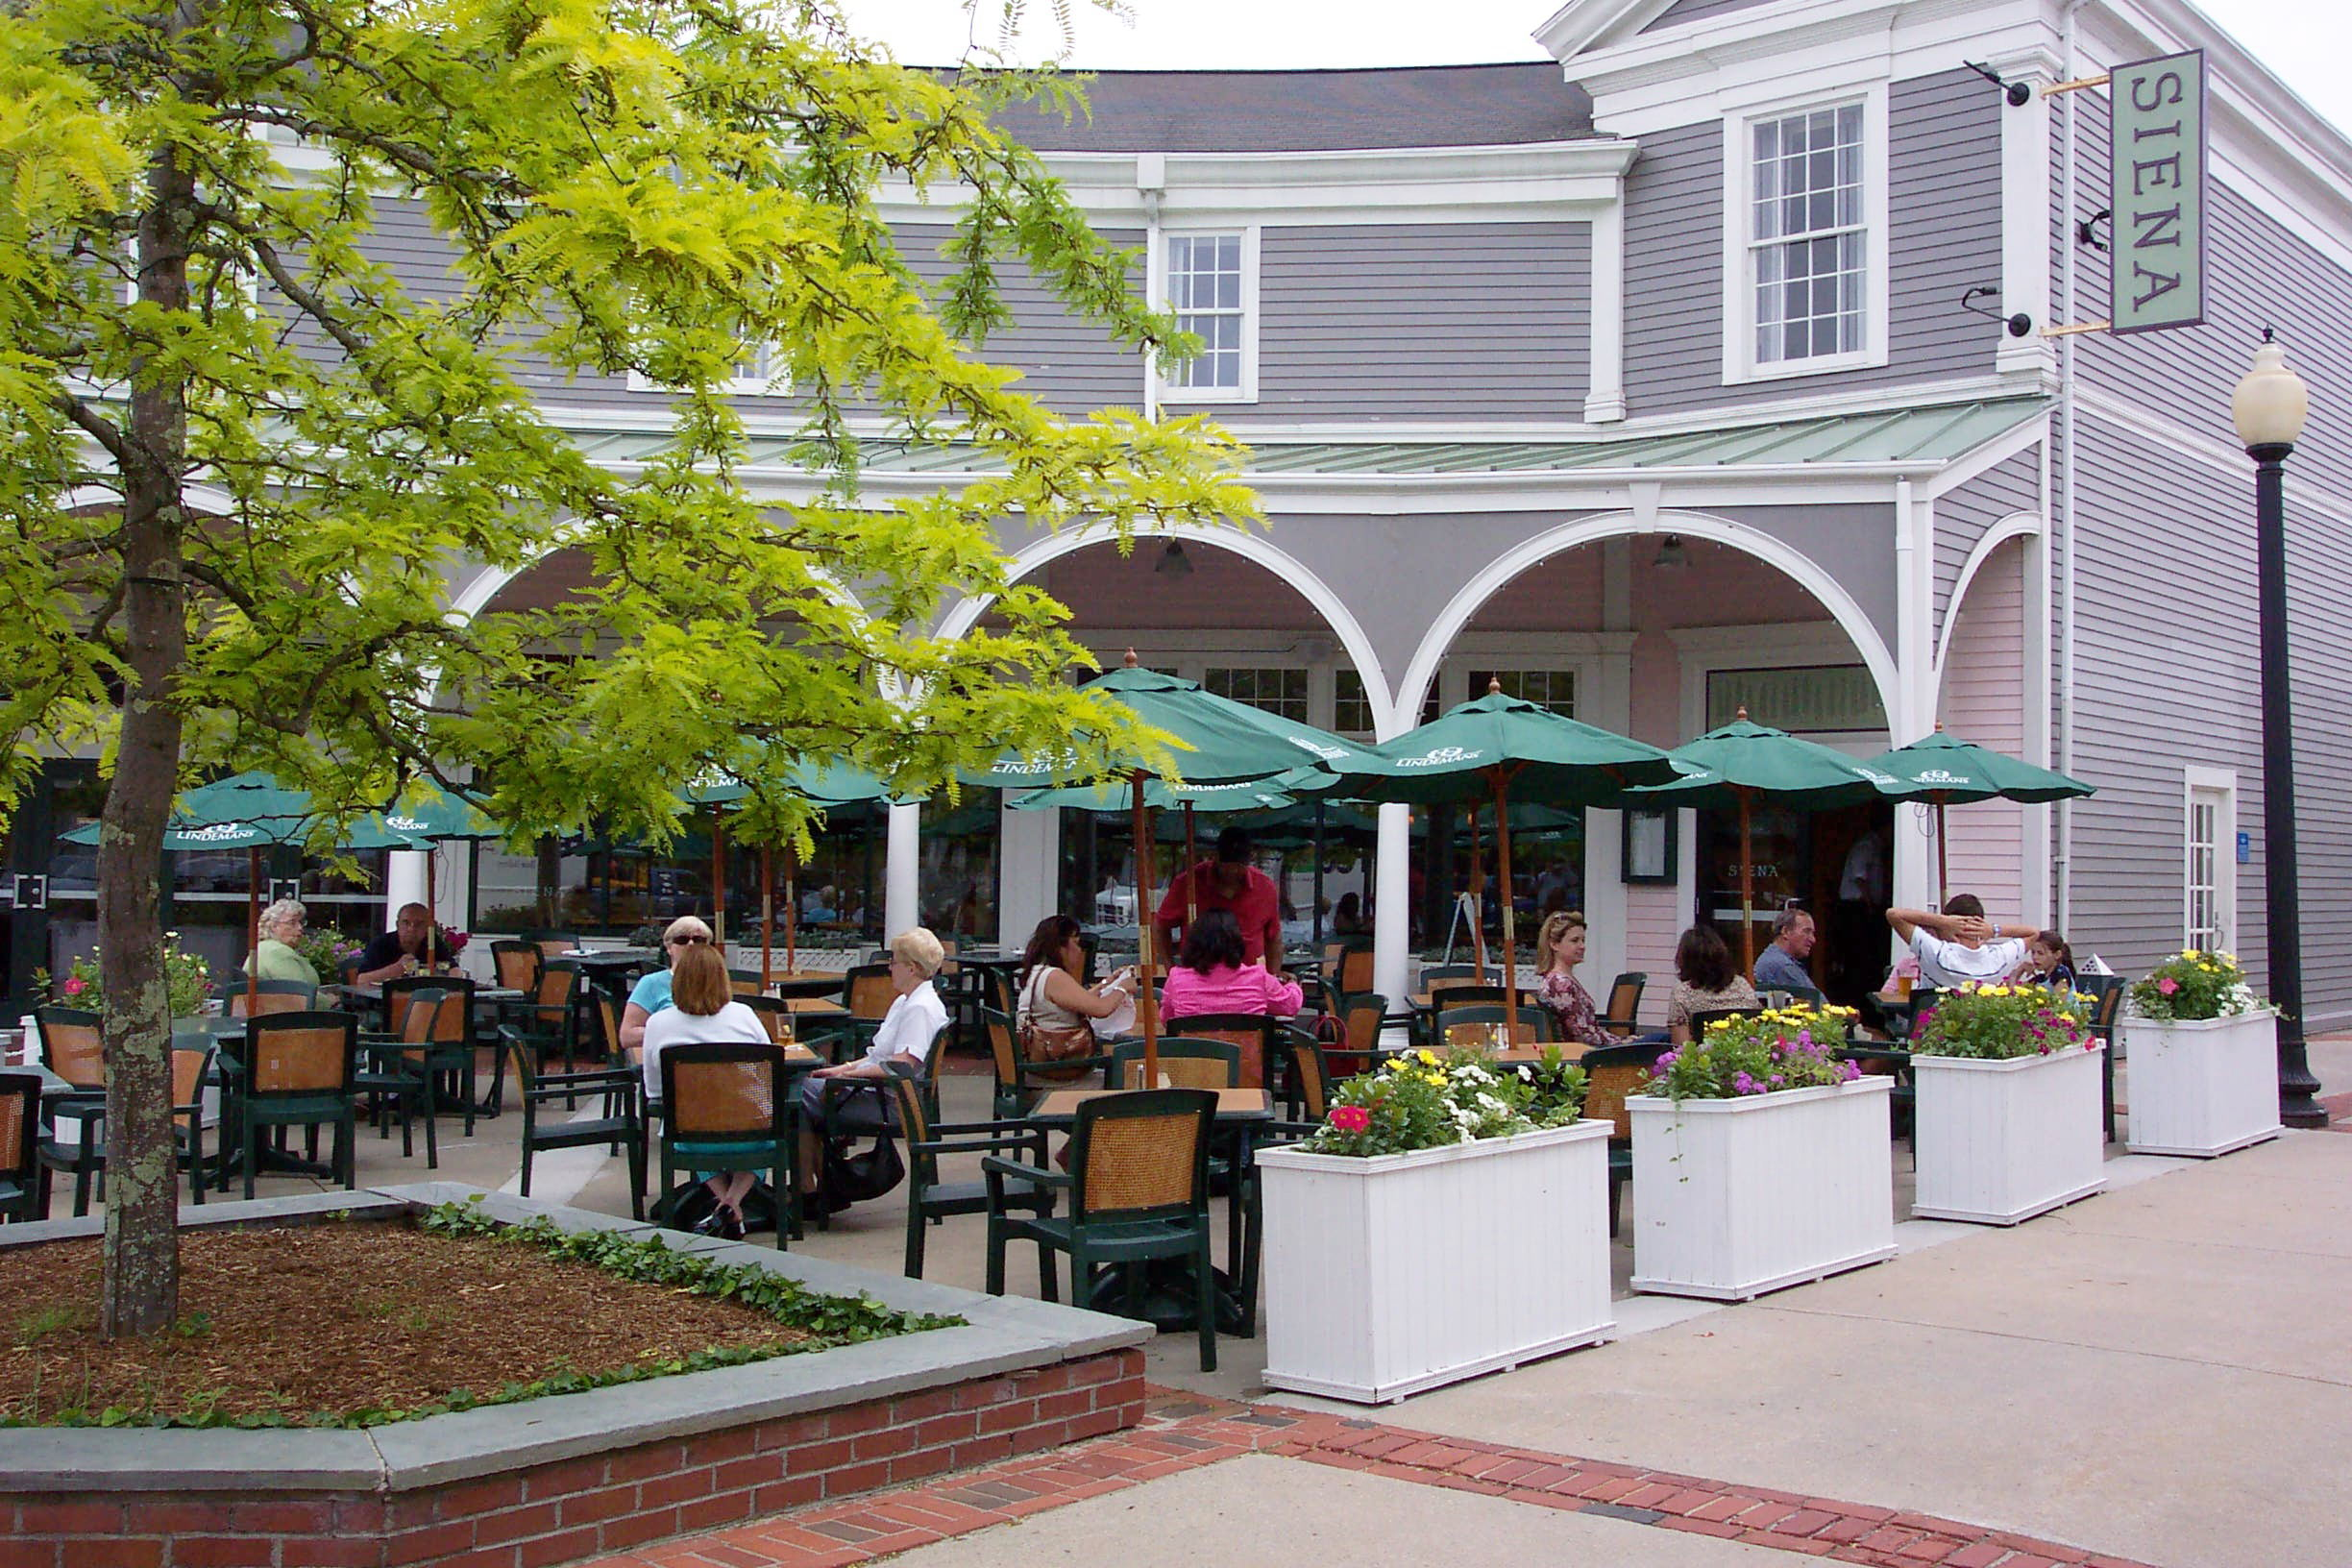 Mashpee_Massachusetts.Mashpee_Commons_TND.Robert_Orr_&_Associates.New_Urbanism.Mixed-Use.Shopping.Restaurant2.jpg